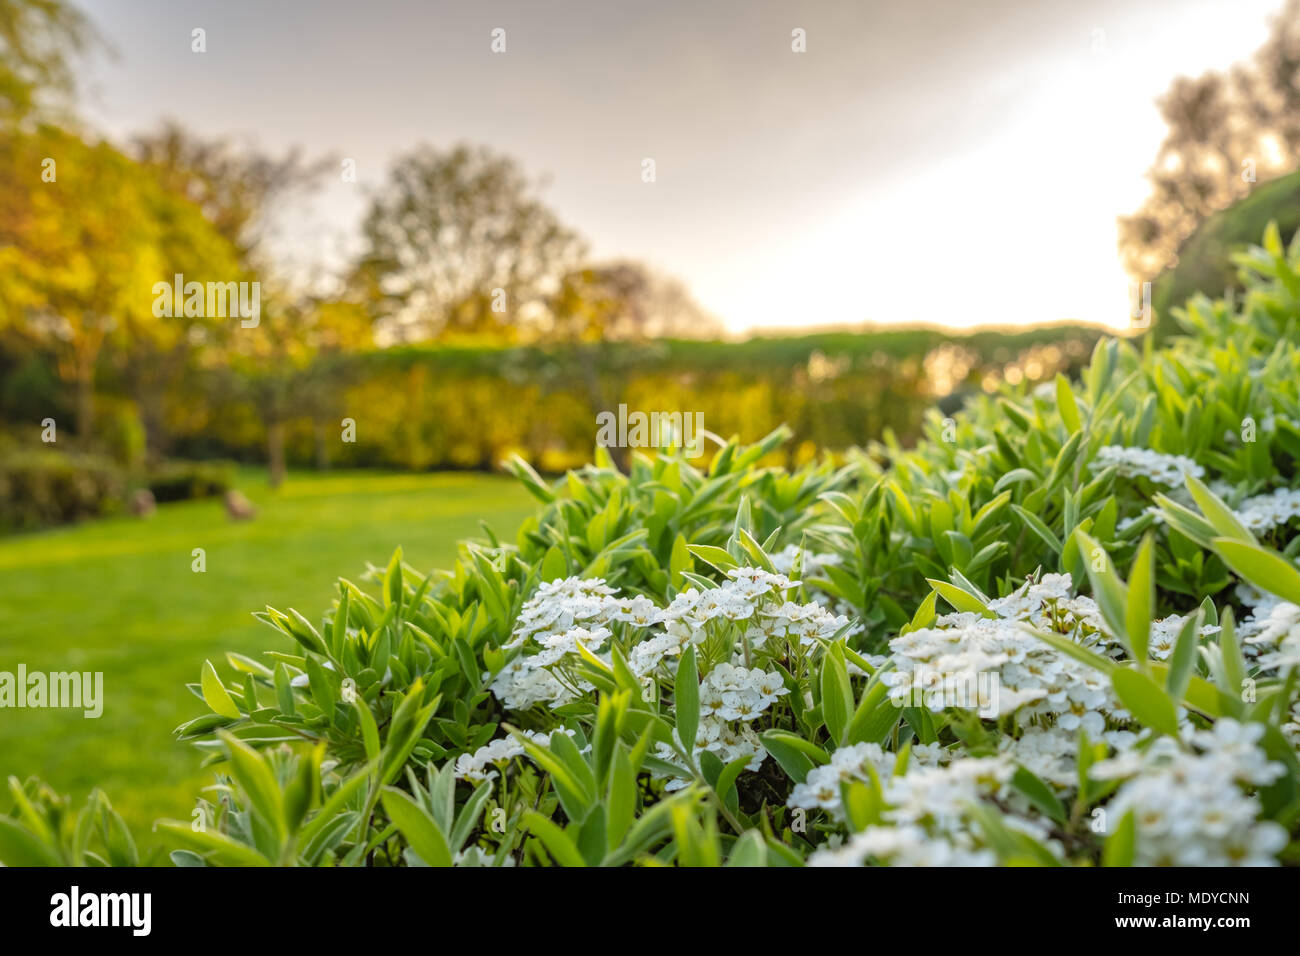 Shallow focus, summertime view of a delicate, white flower shrub and blossom seen in a large and well maintained private garden Stock Photo